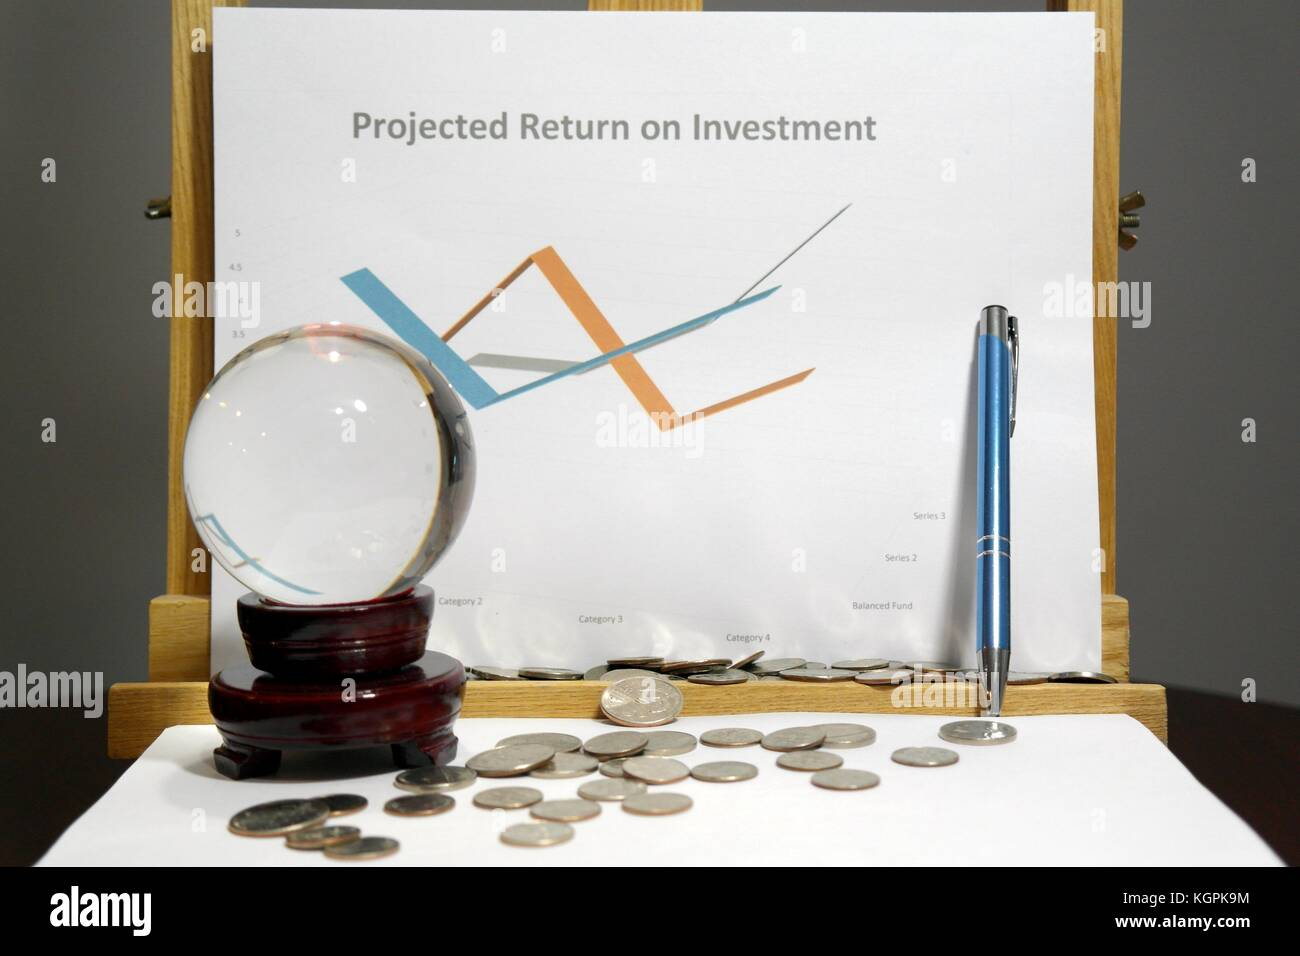 Crystal ball in front of a graph predicting return on investment - Stock Image